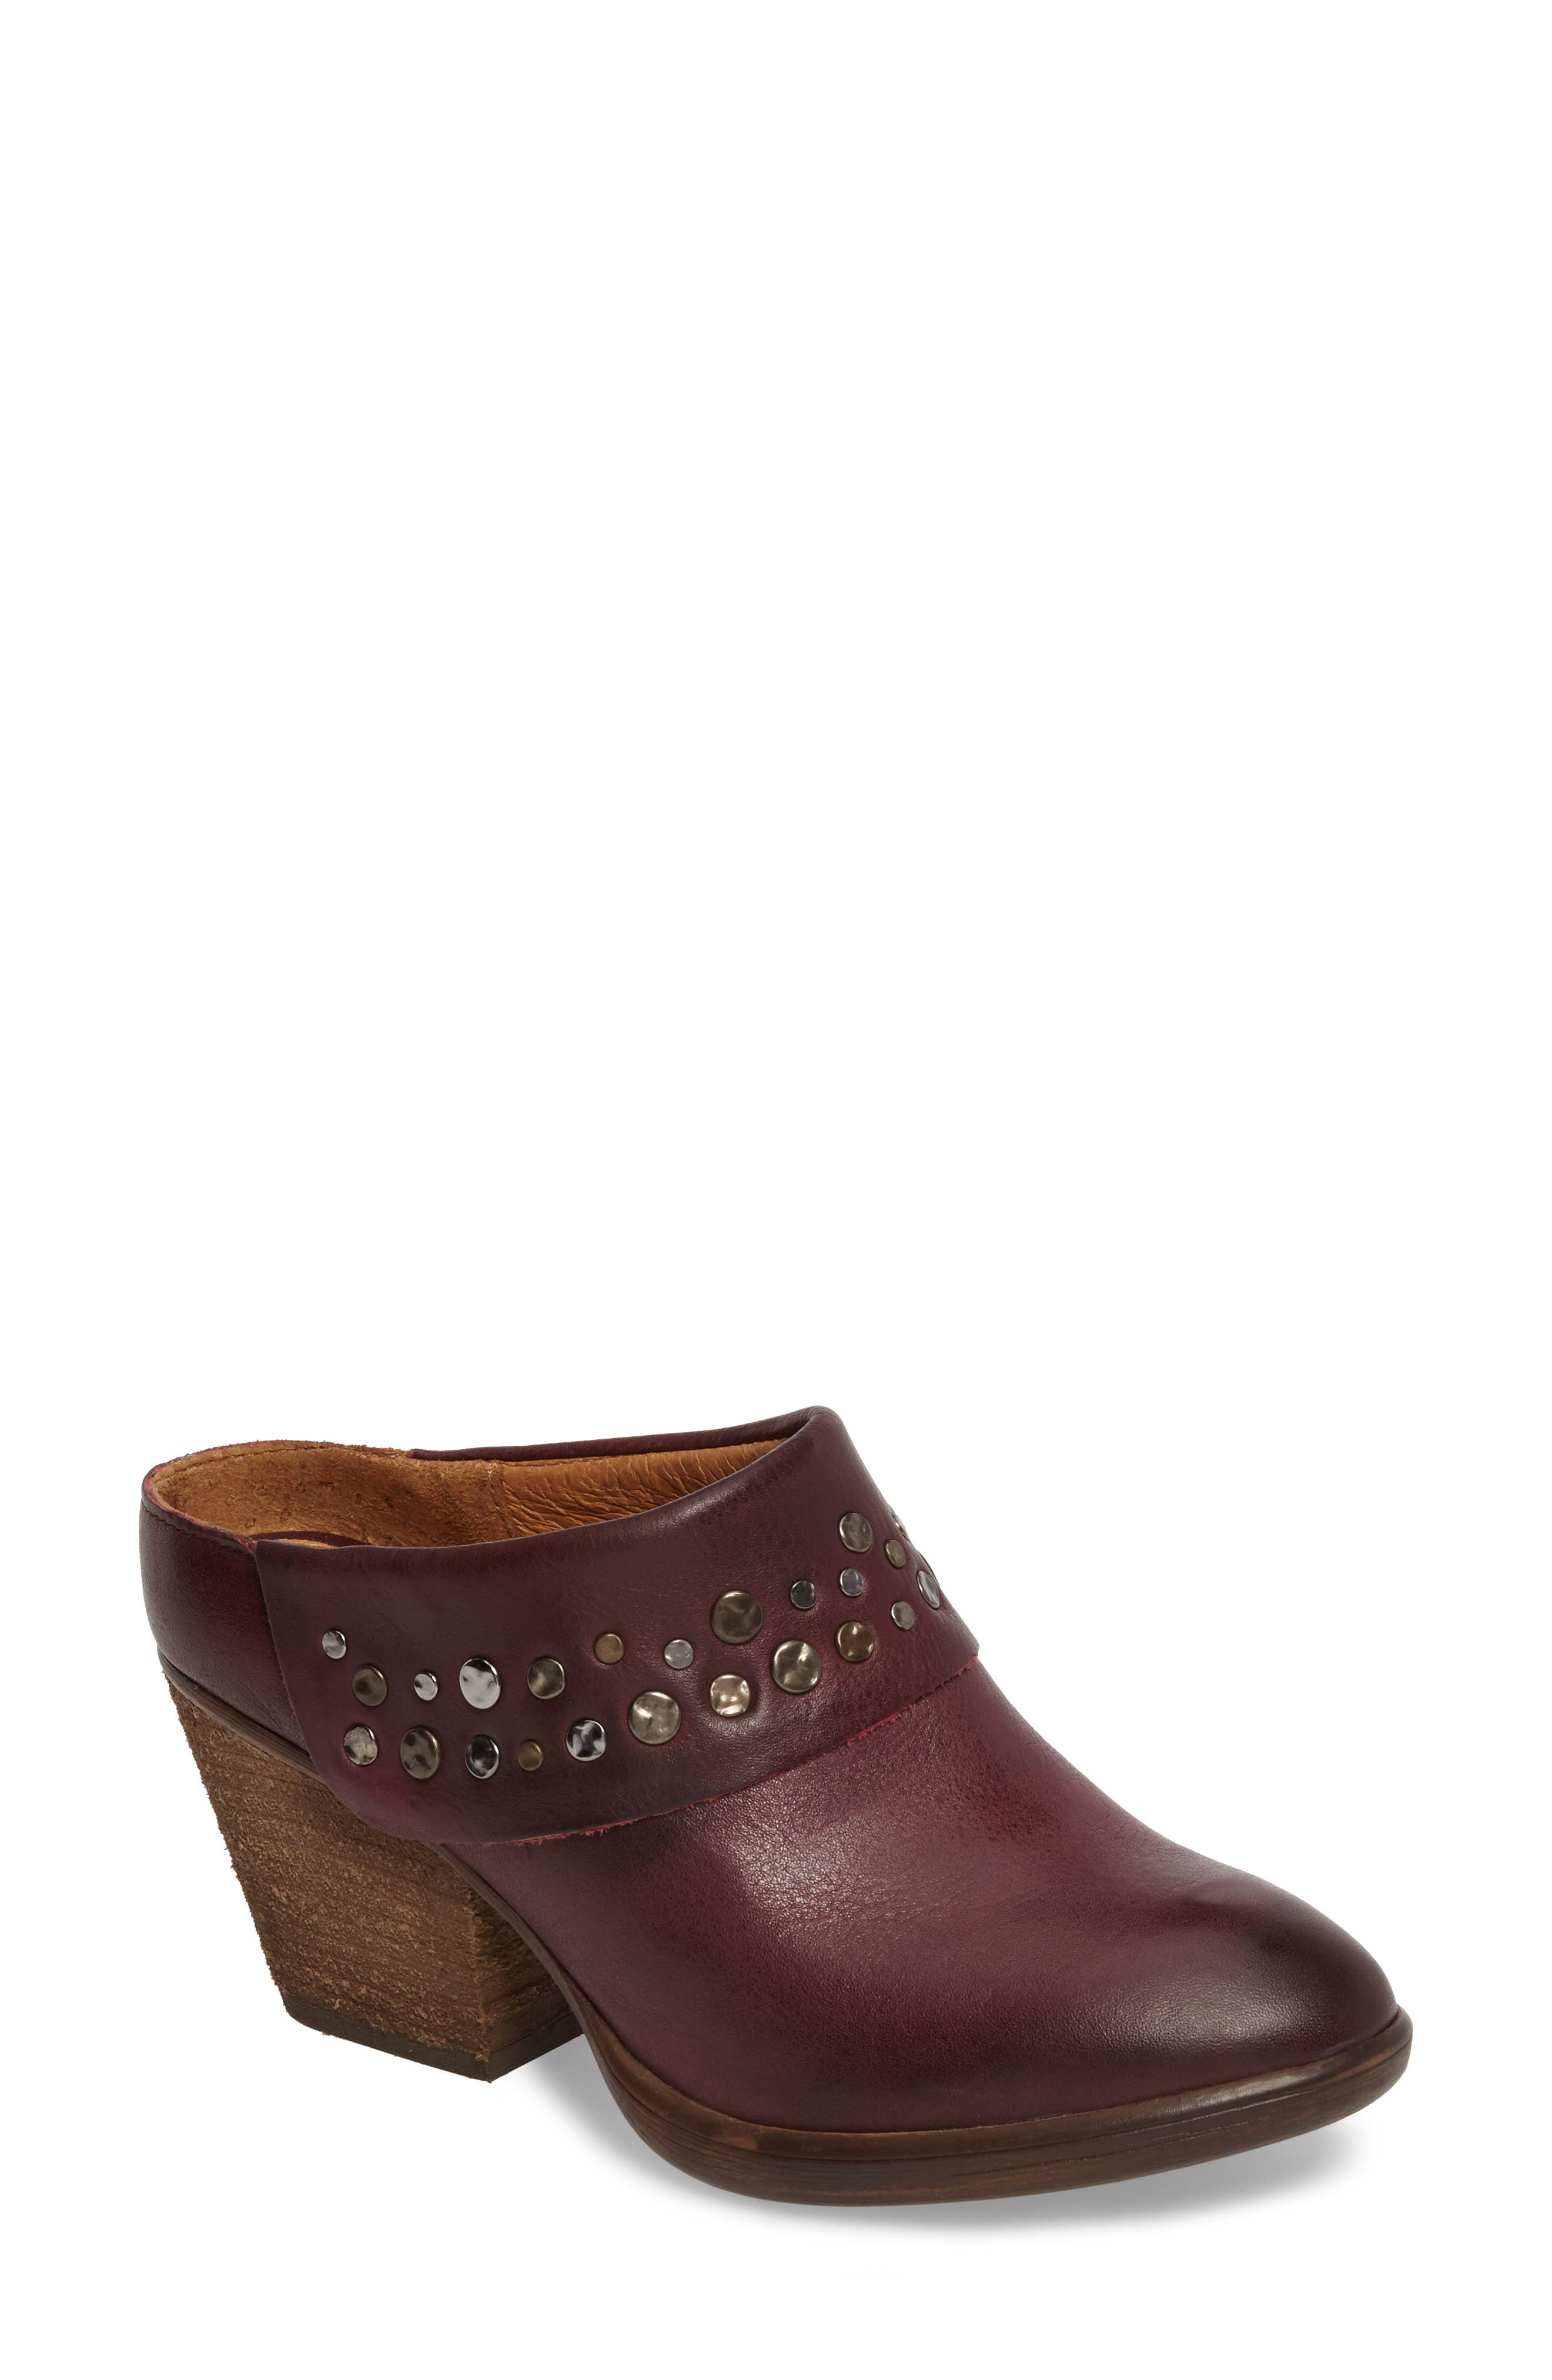 Gila Studded Mule,                         Main,                         color, MARSALA RED LEATHER